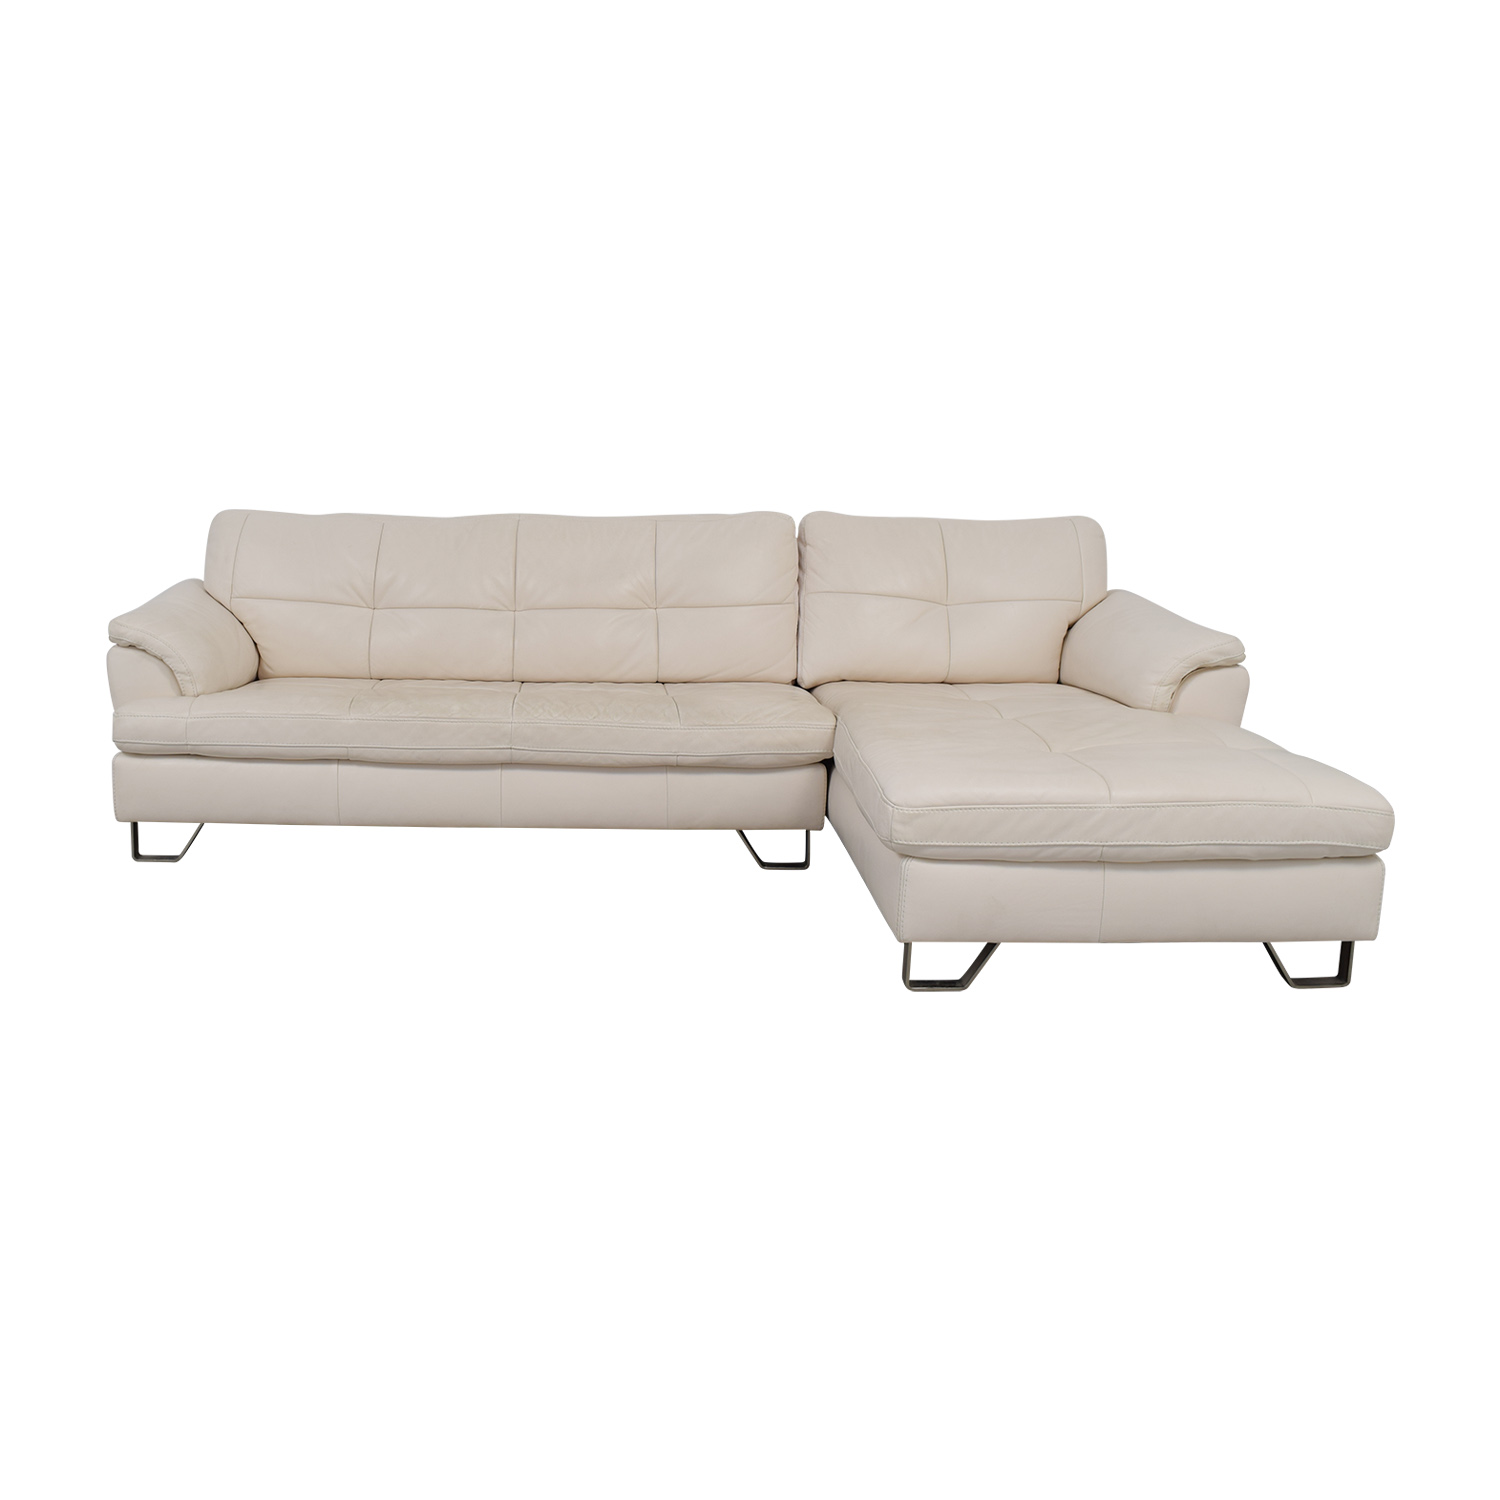 88 Off Ashley Furniture White Leather Chaise Sectional Sofas